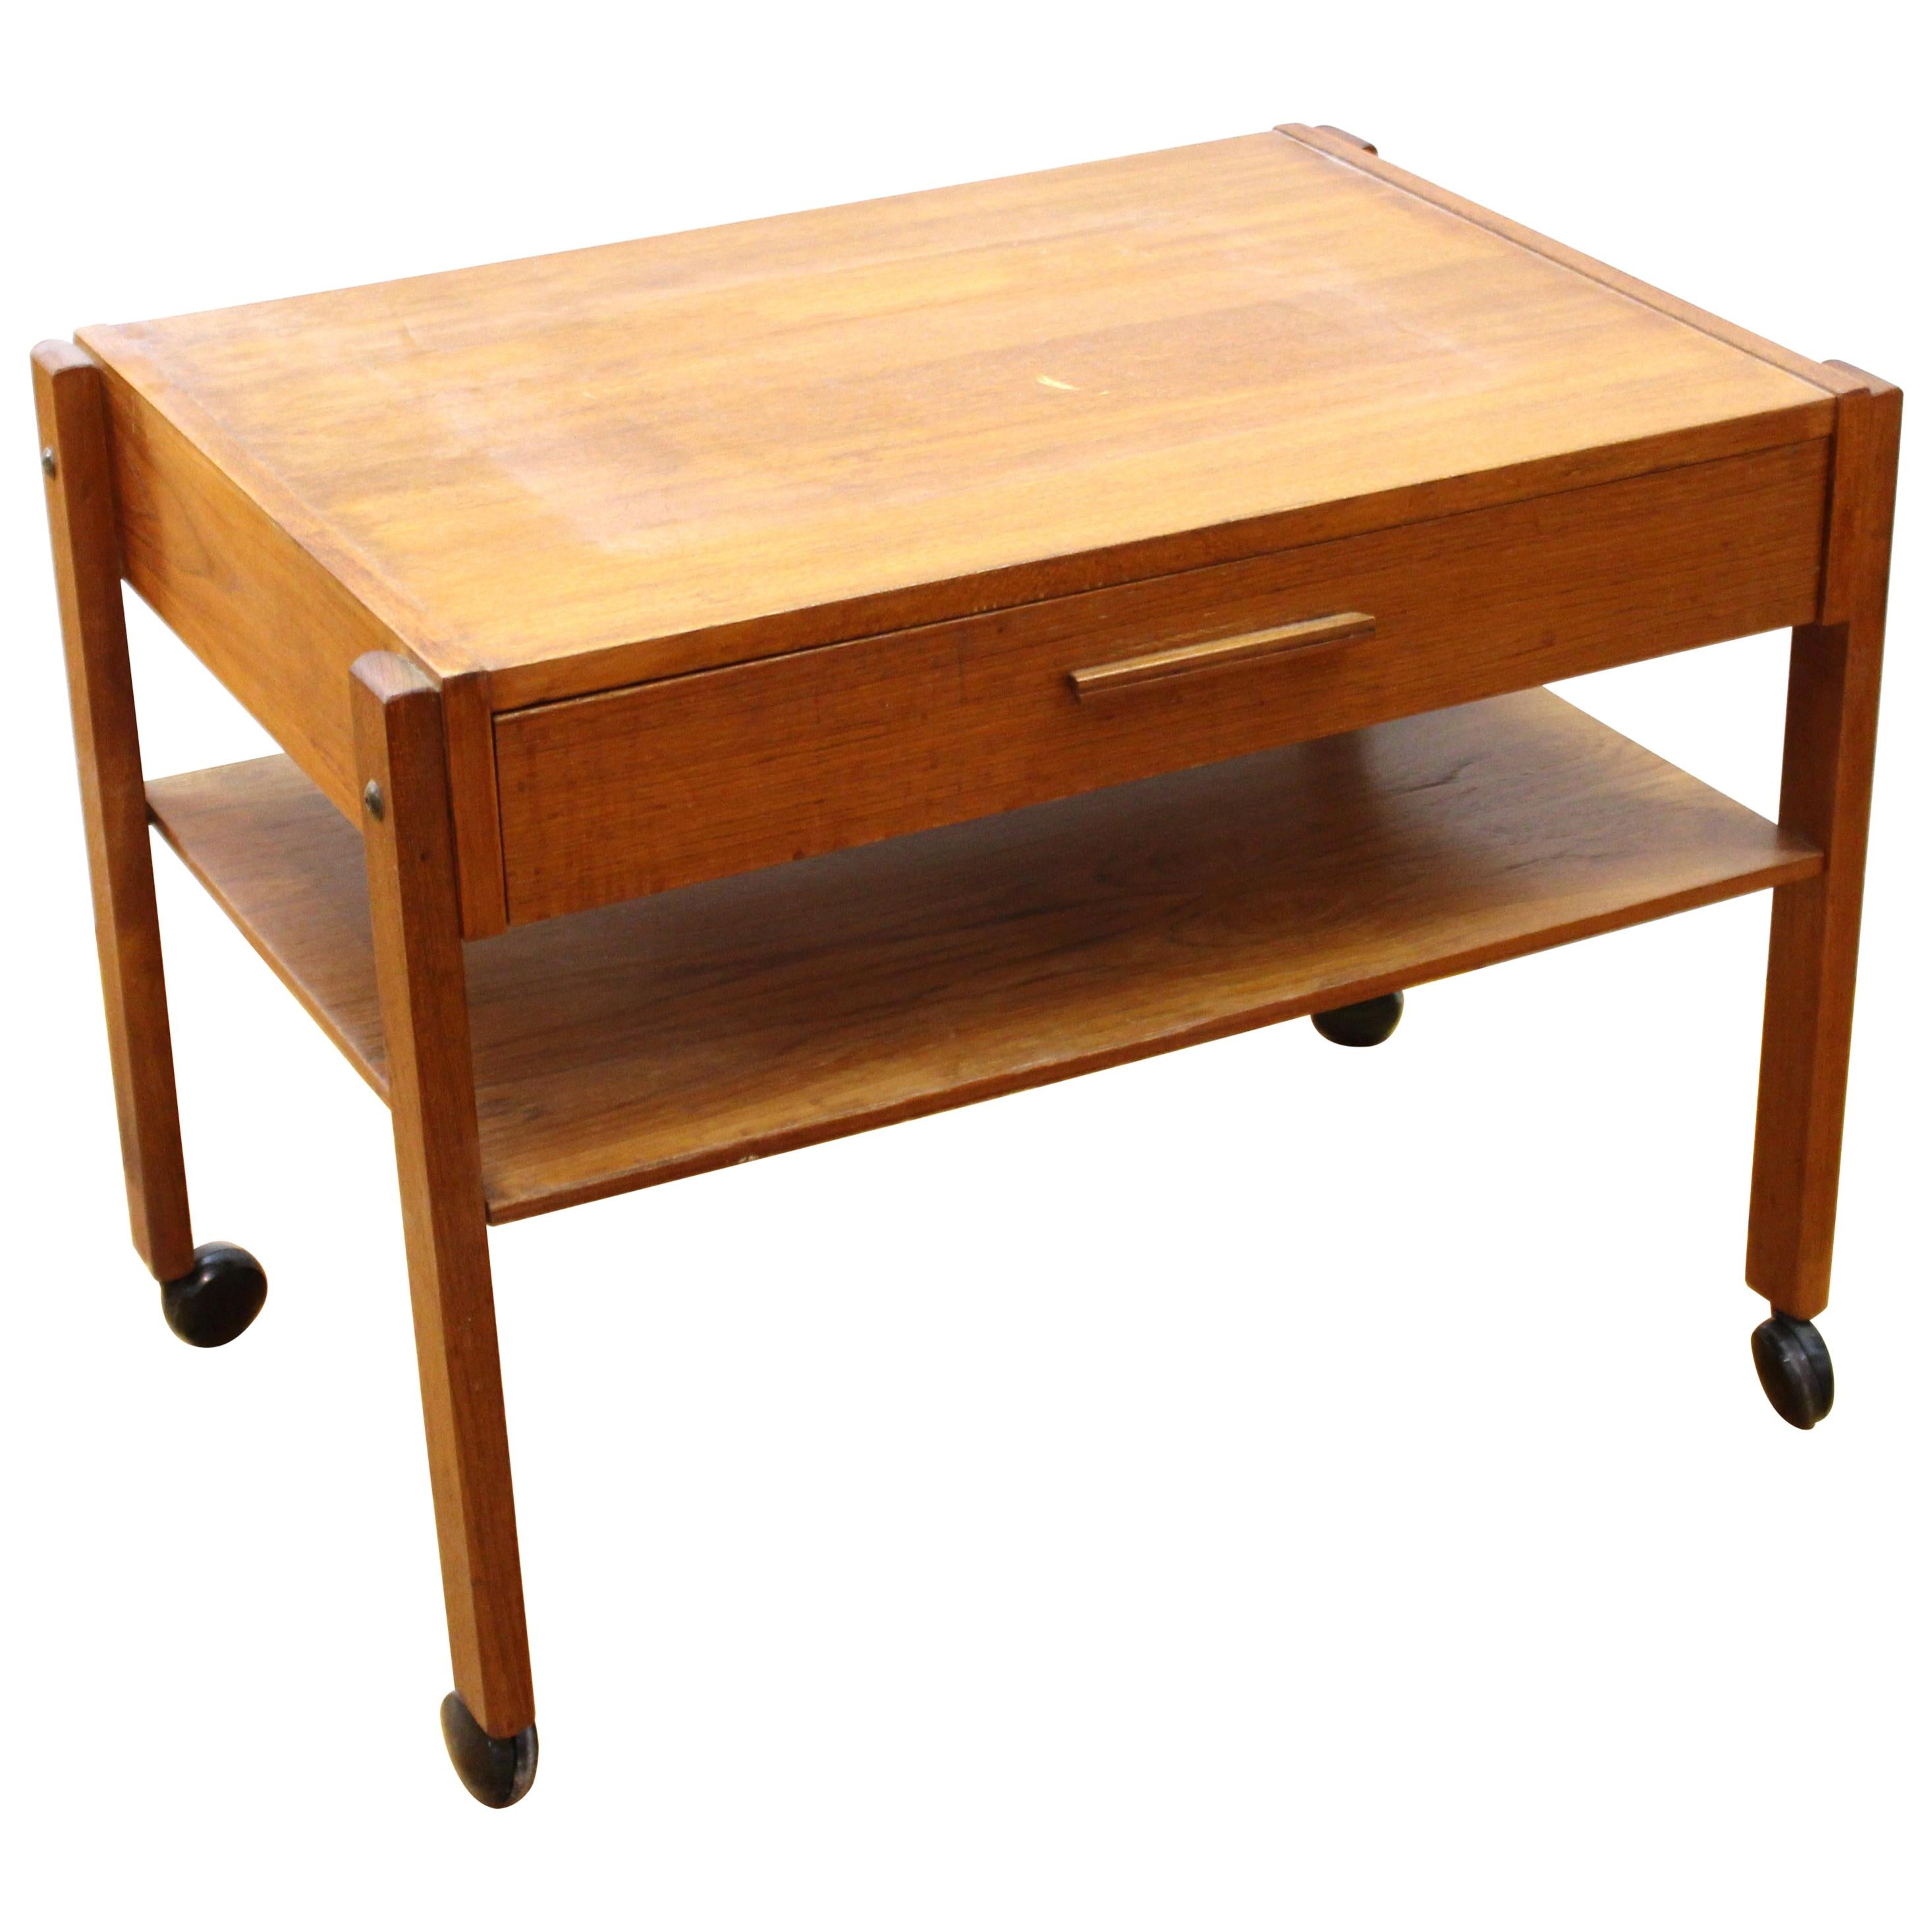 Danish Mid-Century Modern Side Table on Casters